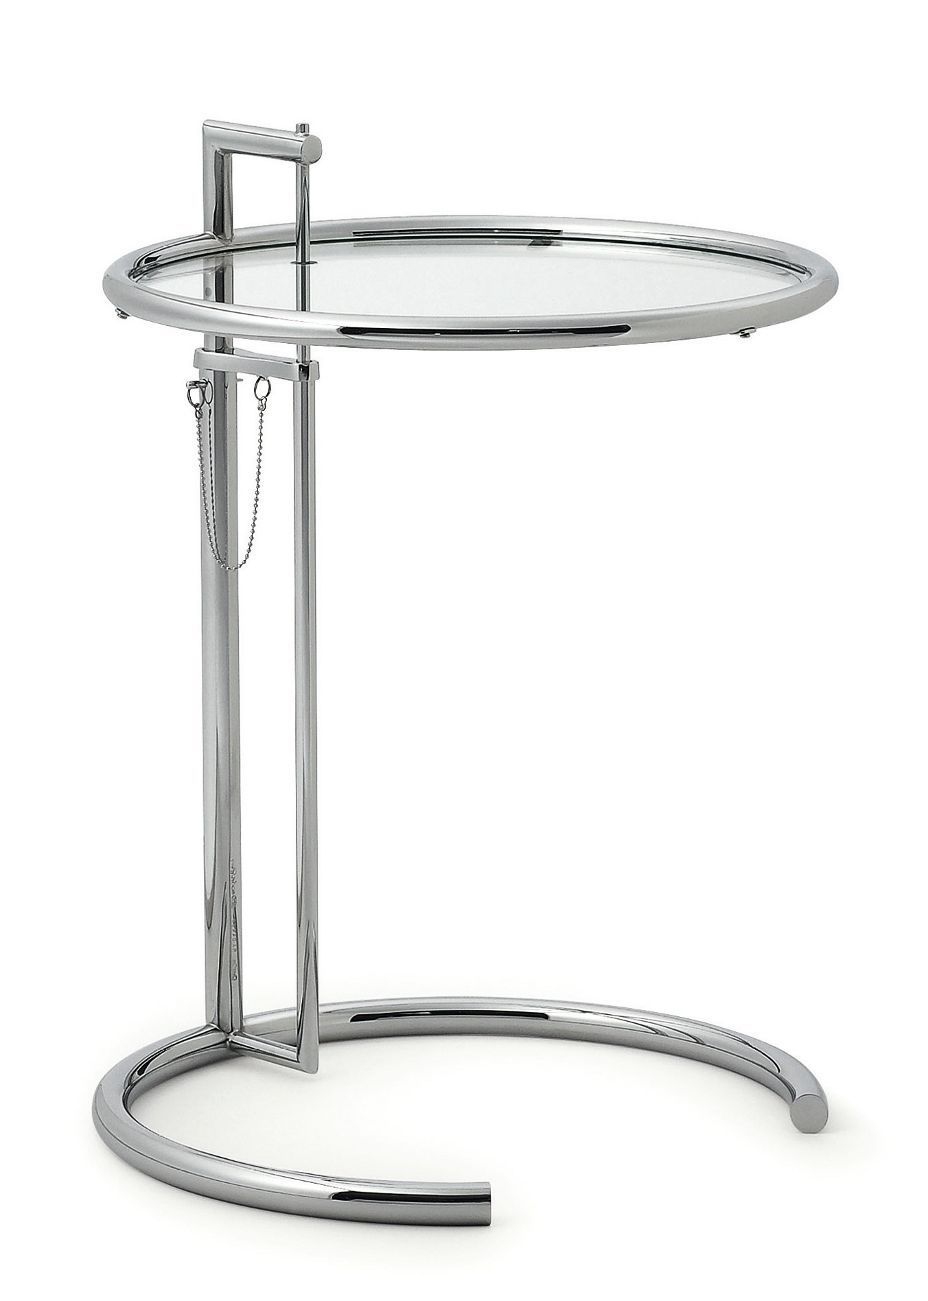 ADJUSTABLE TABLE E 1027 Designed By Eileen Gray   Still In Production By  ClassiCon.